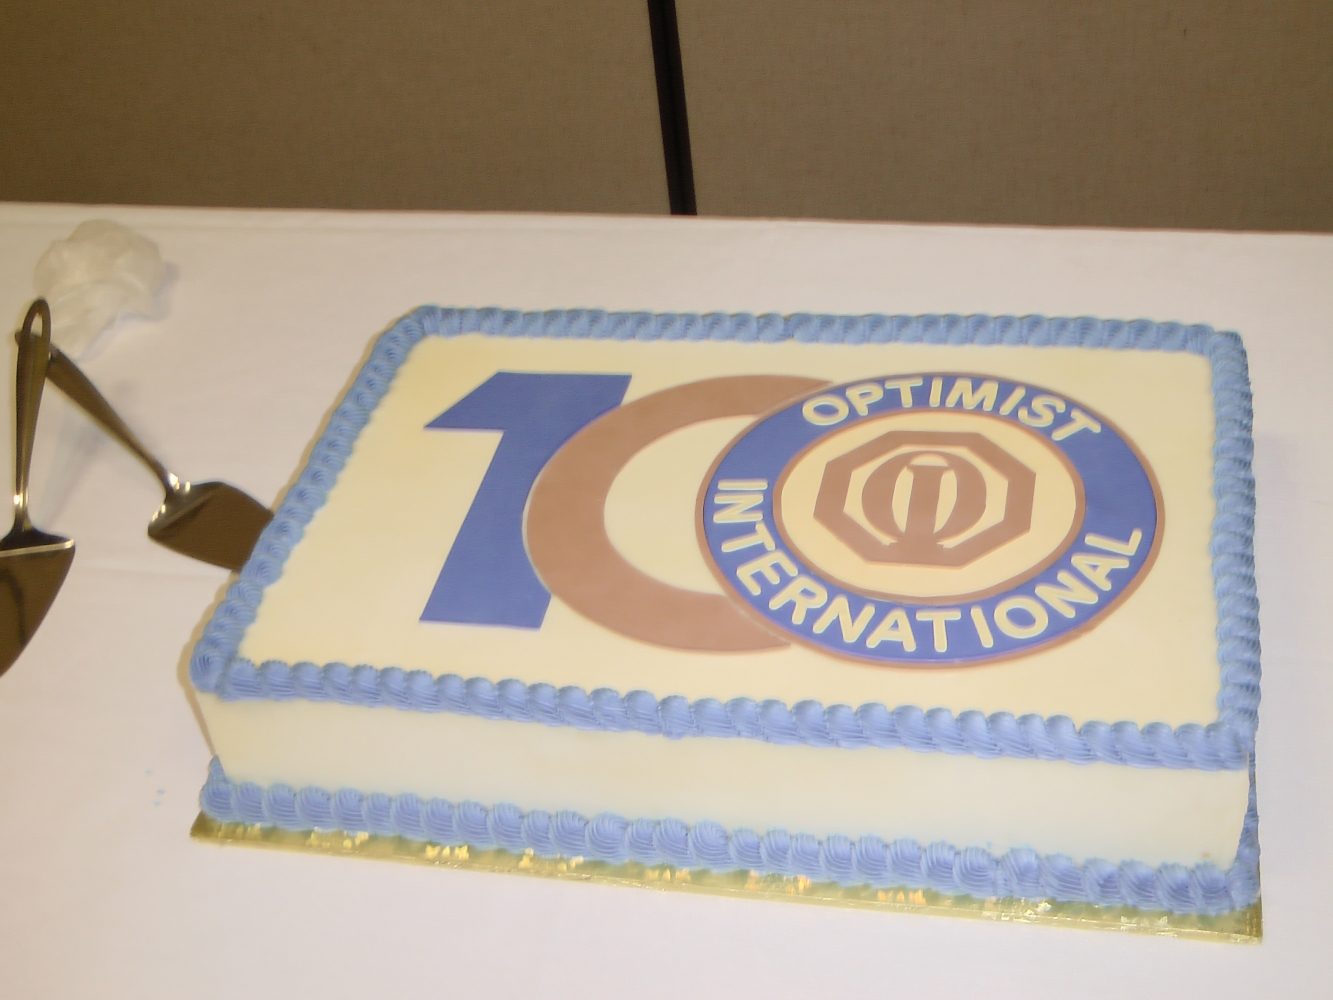 optimist-club-of-regina-celebrates-100-years-of-optimist-international-reception-videos-flag-raising-videos-baseball-field-renovation-videos